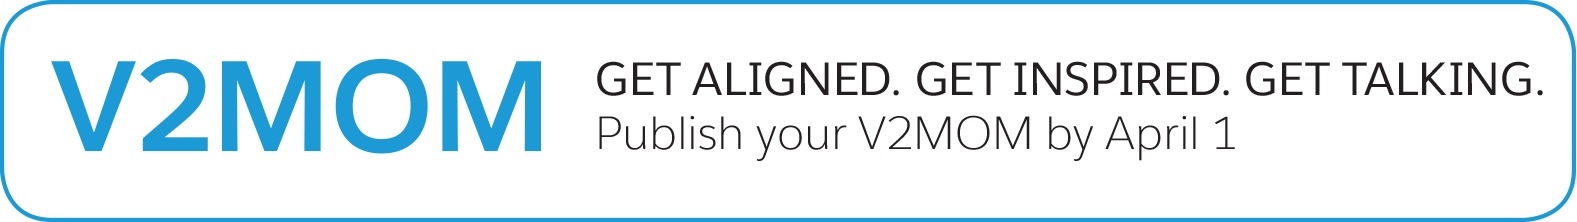 V2MOM Get aligned. Get inspired. Get talking.